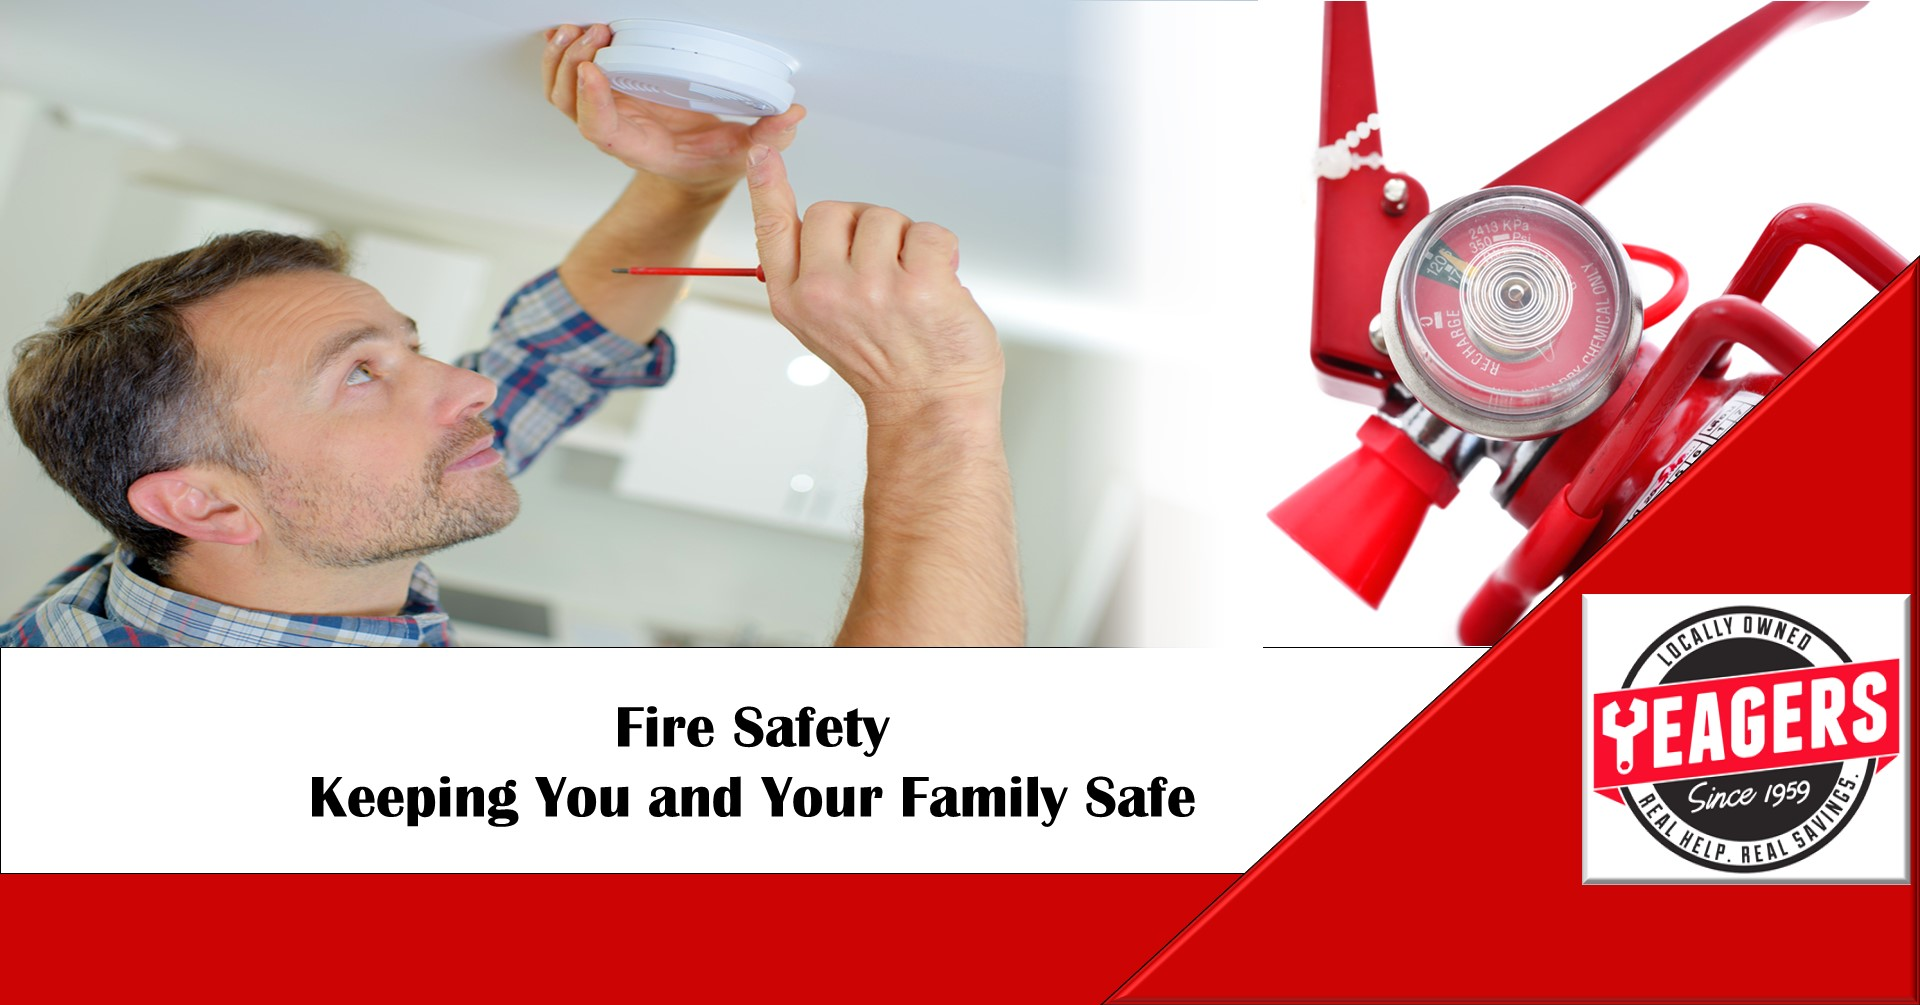 Fire Safety Tips from Your Friends at Yeagers